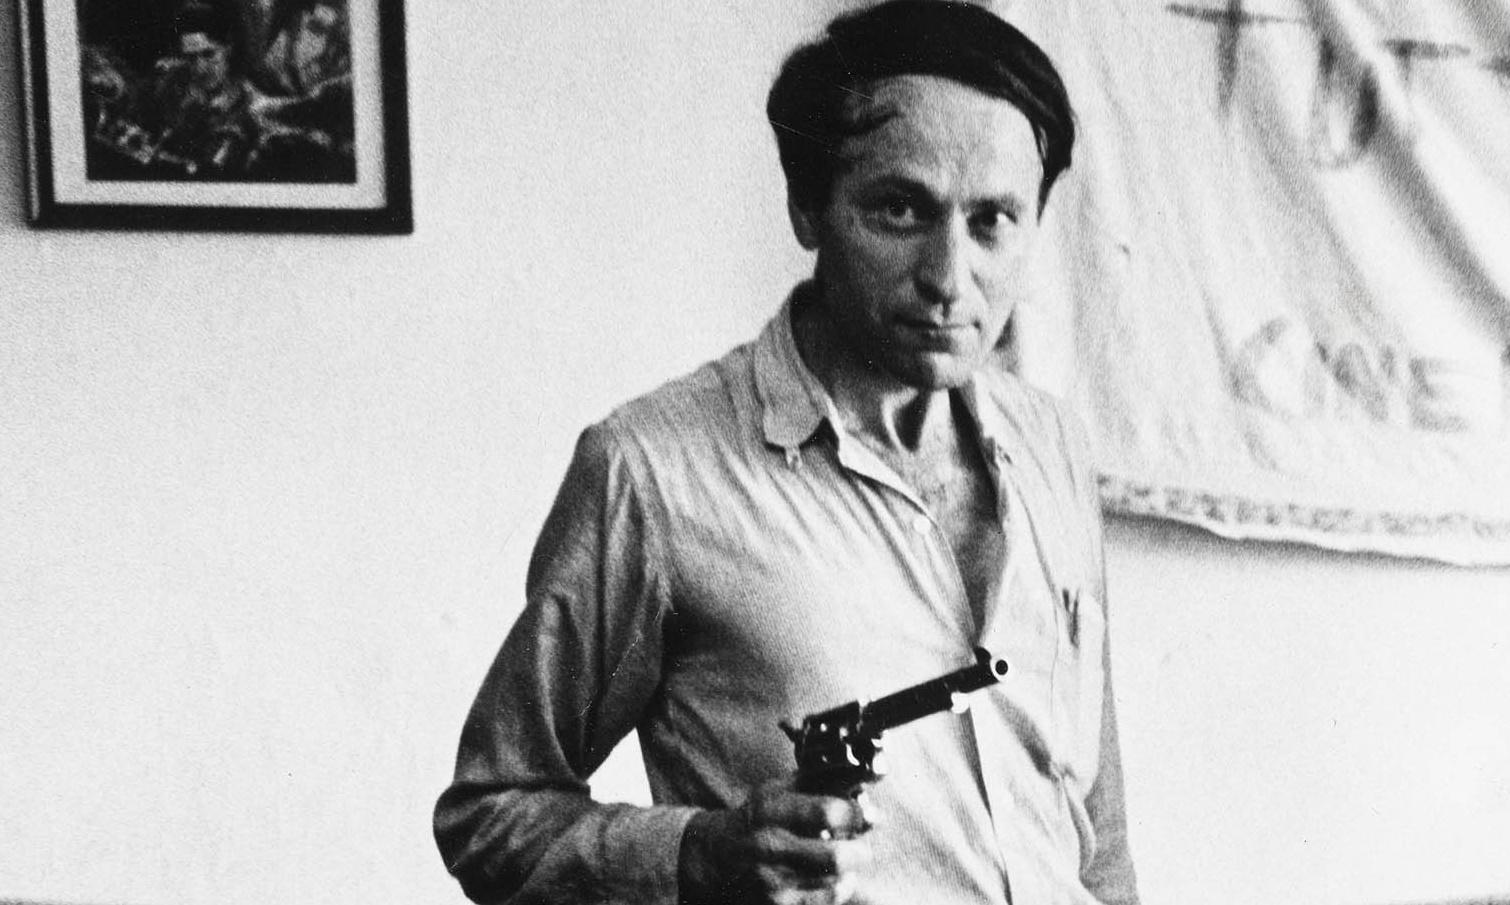 'I was very angry' – the last interview with Jonas Mekas, godfather of avant garde film